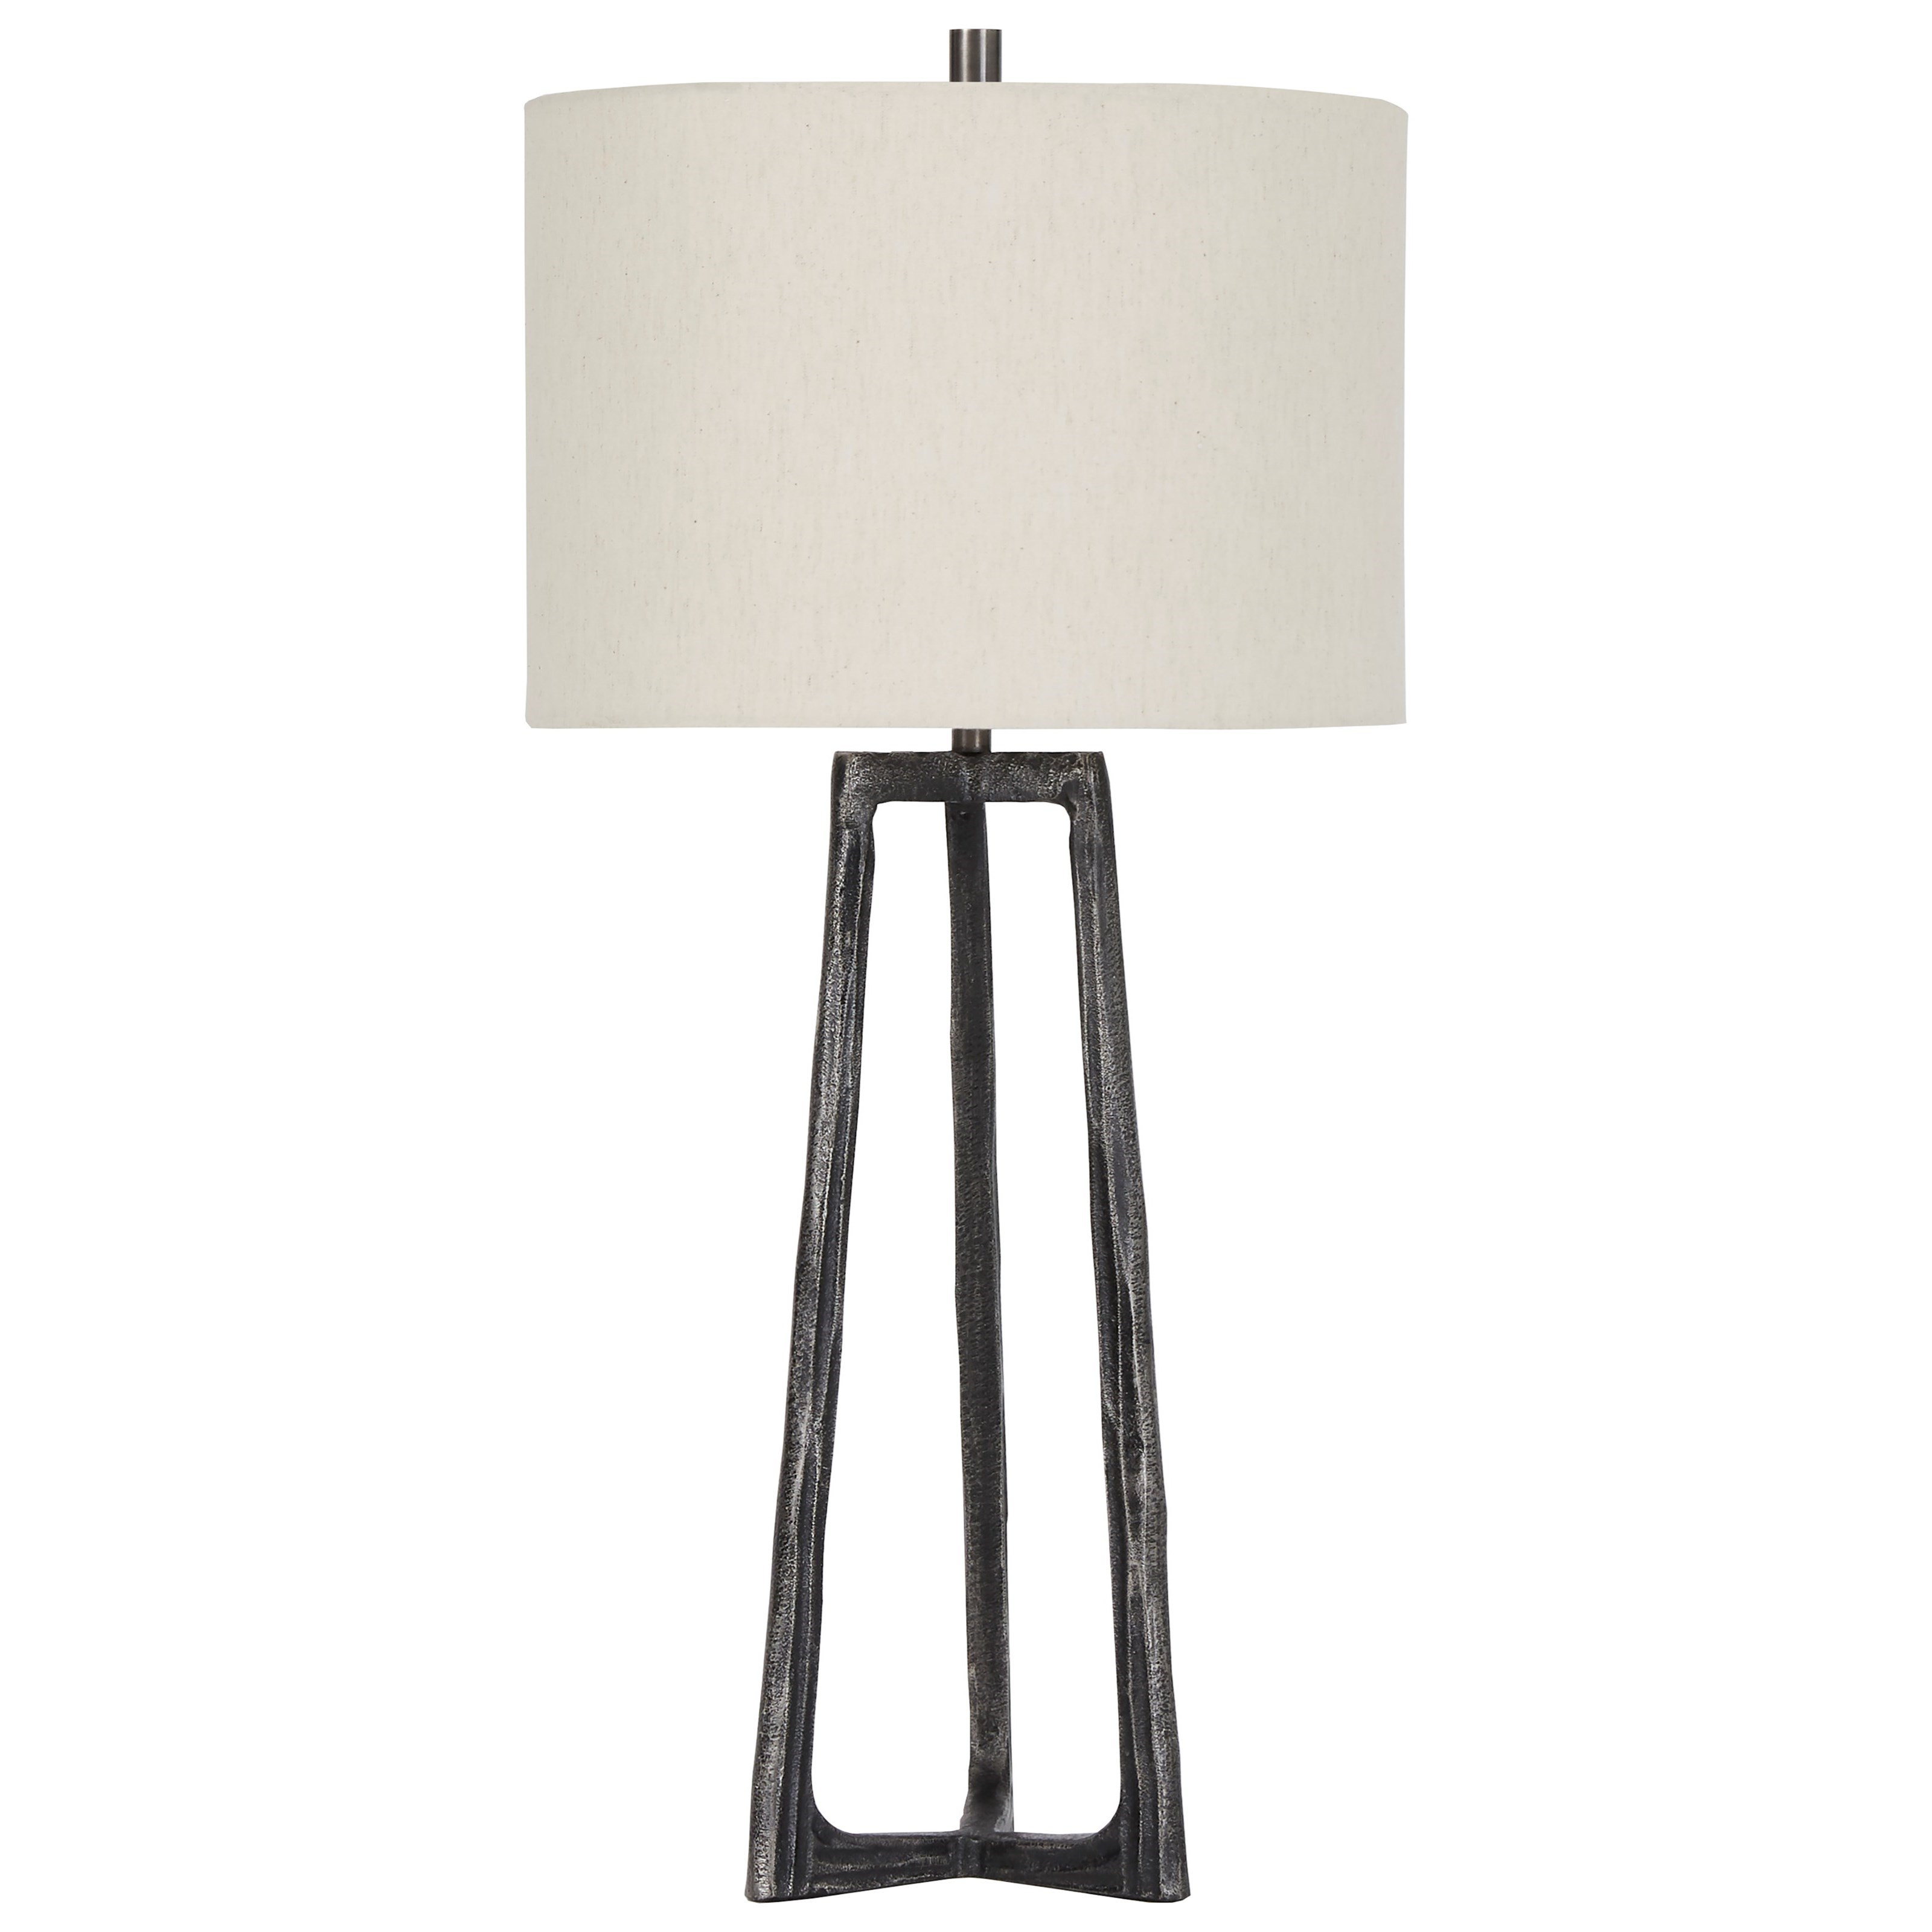 Lamps - Casual Peeta Antique Pewter Finish Metal Table Lamp by Ashley (Signature Design) at Johnny Janosik